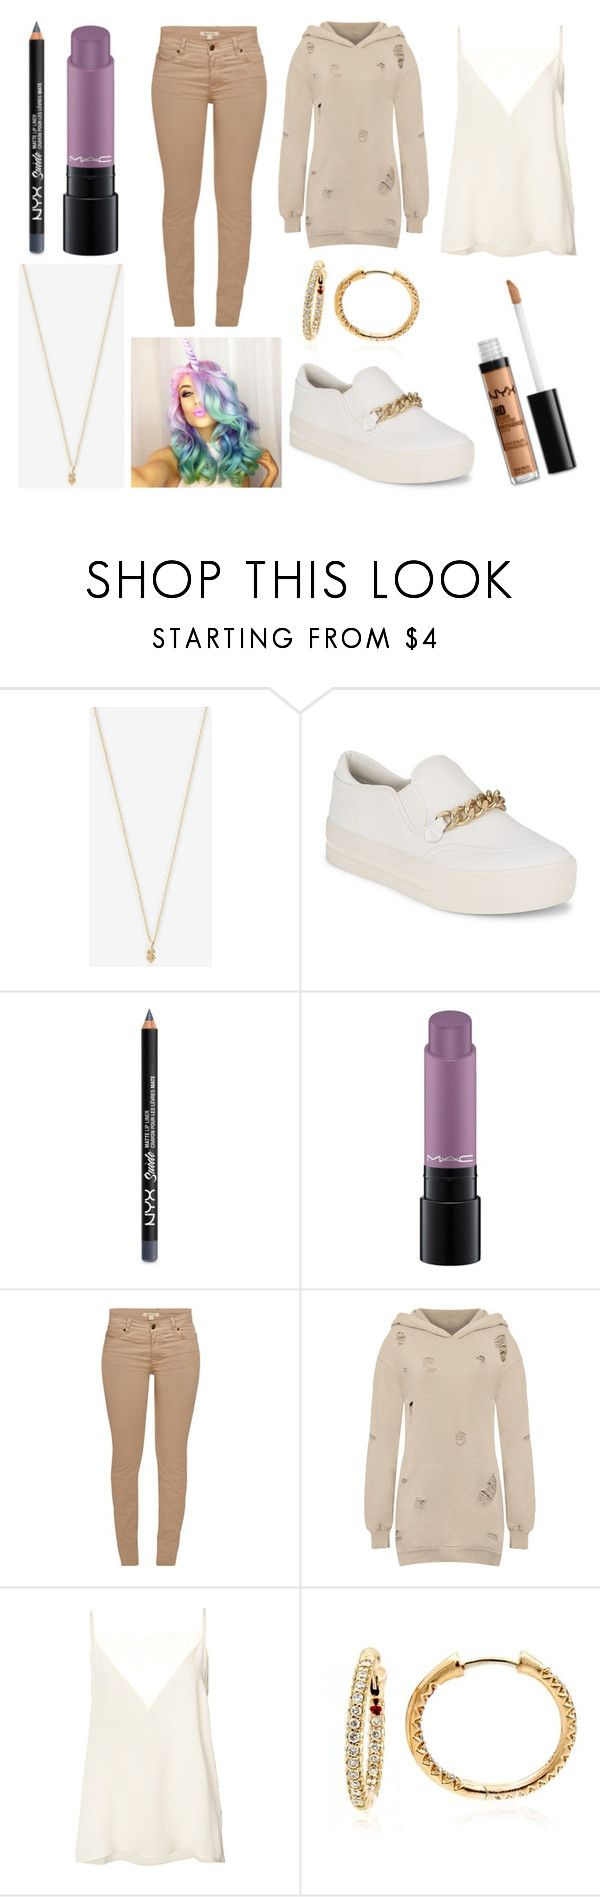 """""""Playing the game from THE CIRCLE"""" by hailey-smith-13 ❤ liked on Polyvore featuring Winden Jewelry, Ash, NYX, MAC Cosmetics, Barbour, WearAll, Anine Bing and Roberto Coin"""